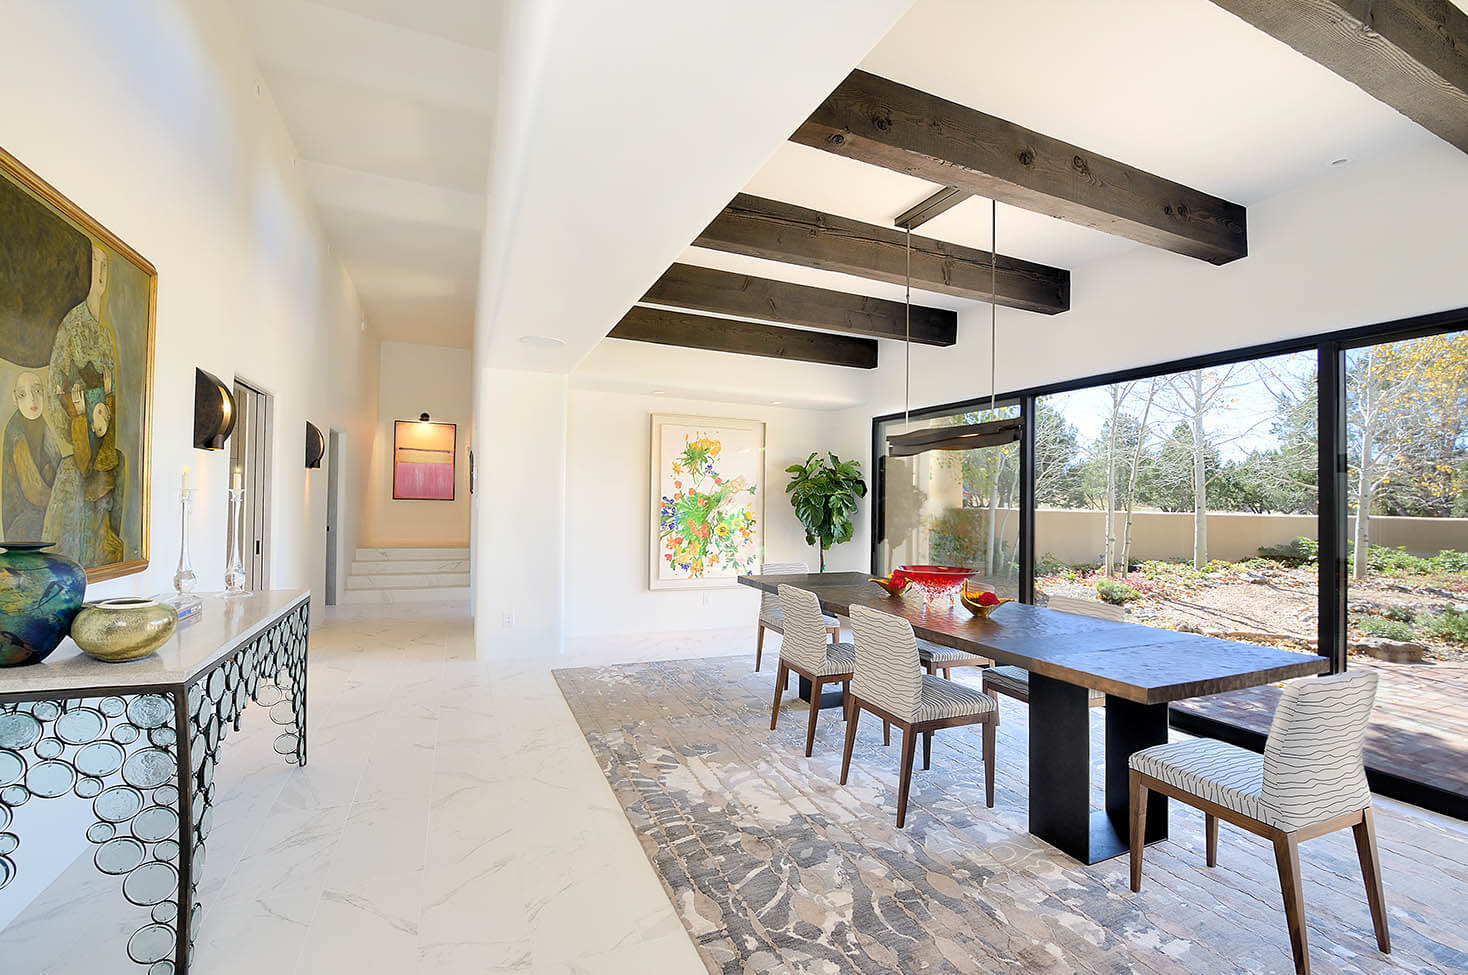 Making the most of your home renovation